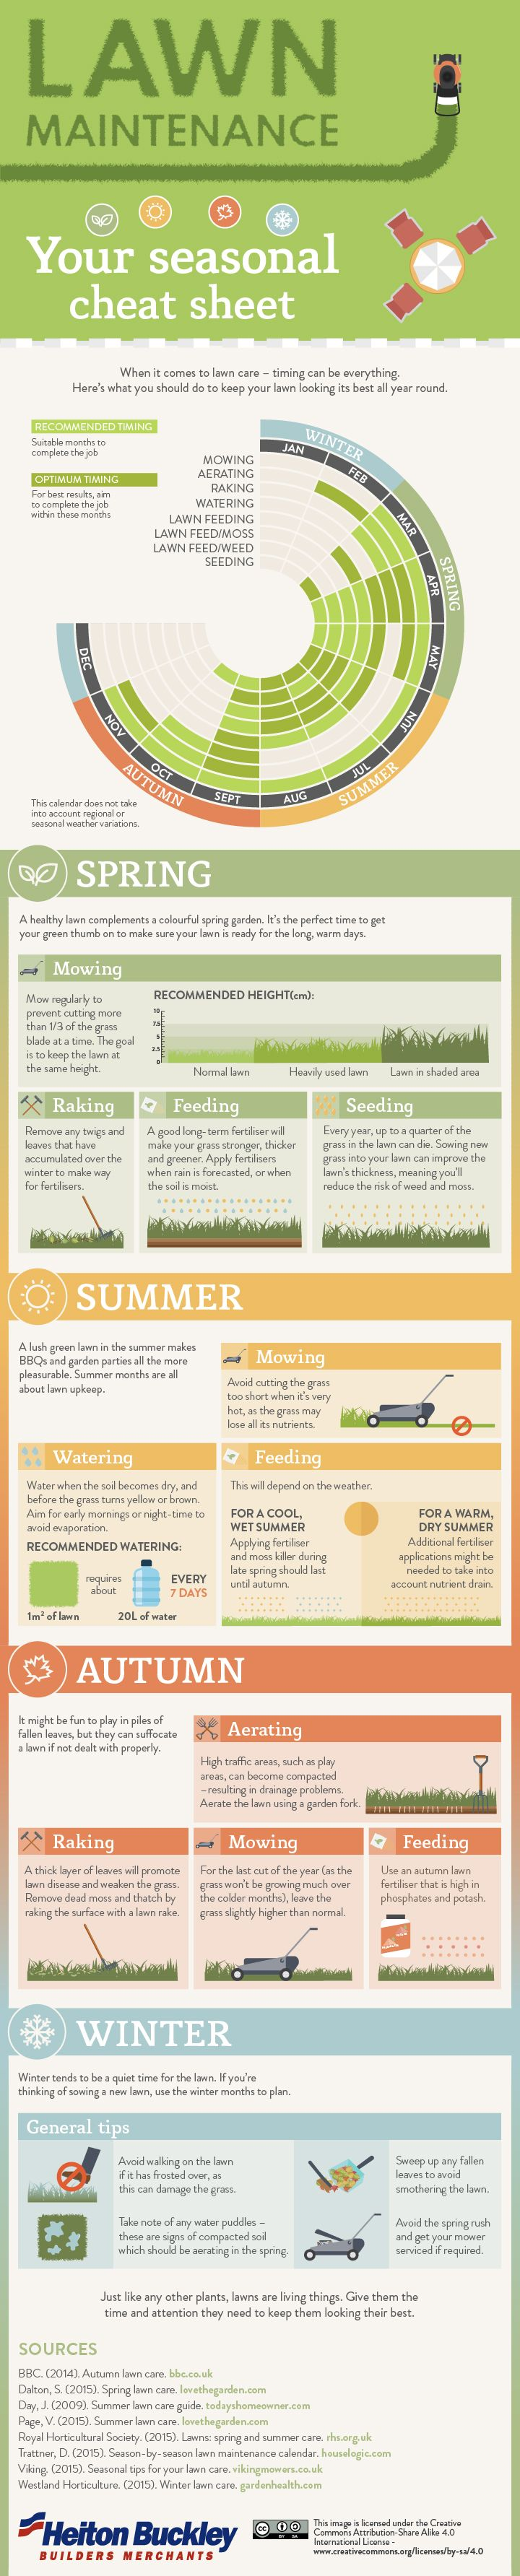 Lawn maintenance: your seasonal cheat sheet #infographic #Lawn #HomeImprovement…